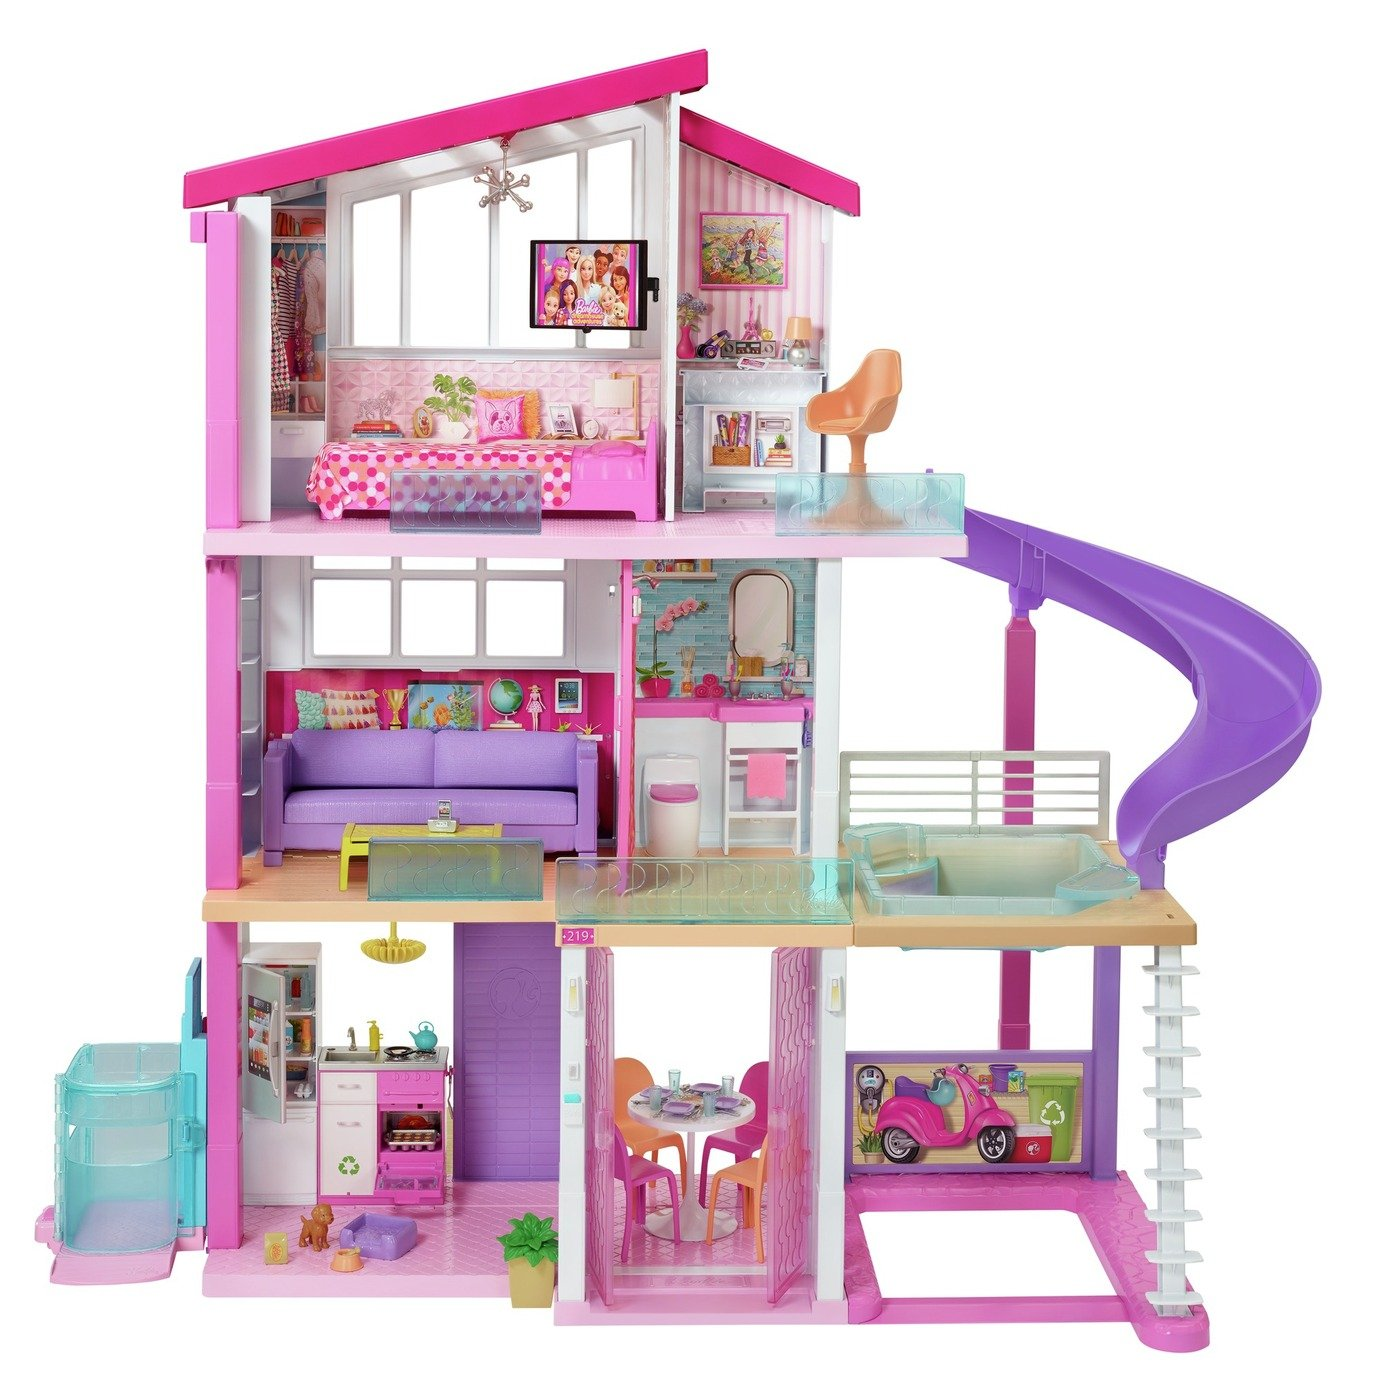 Buy Barbie Dreamhouse Dollhouse With Pool Slide And Elevator